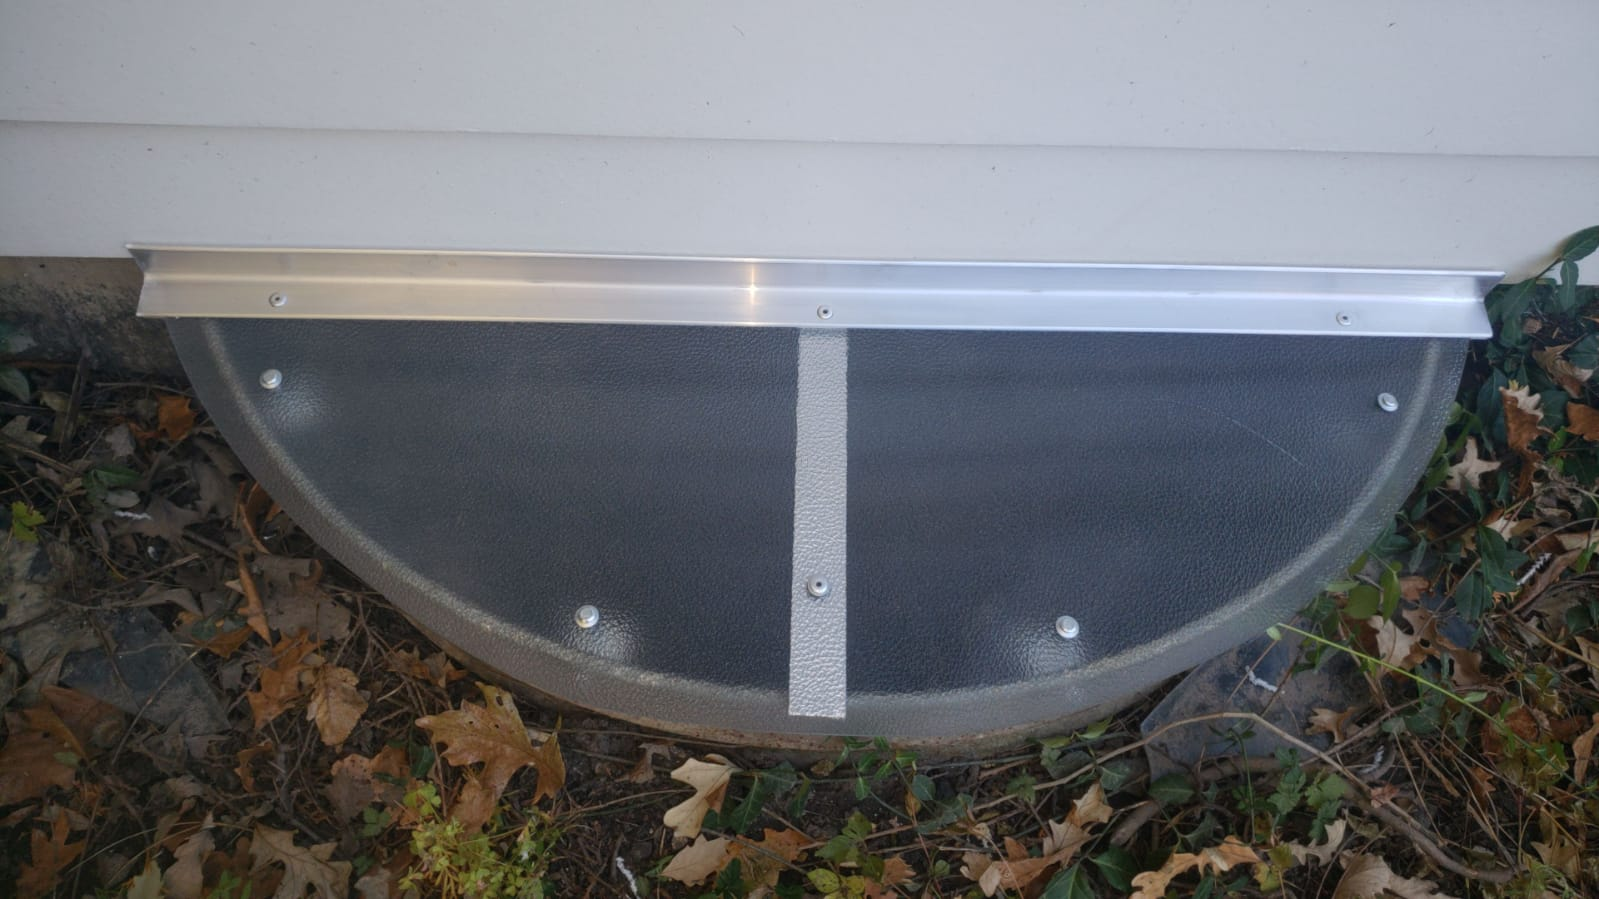 Round lake, IL-HandyManny Custom Window Well Covers